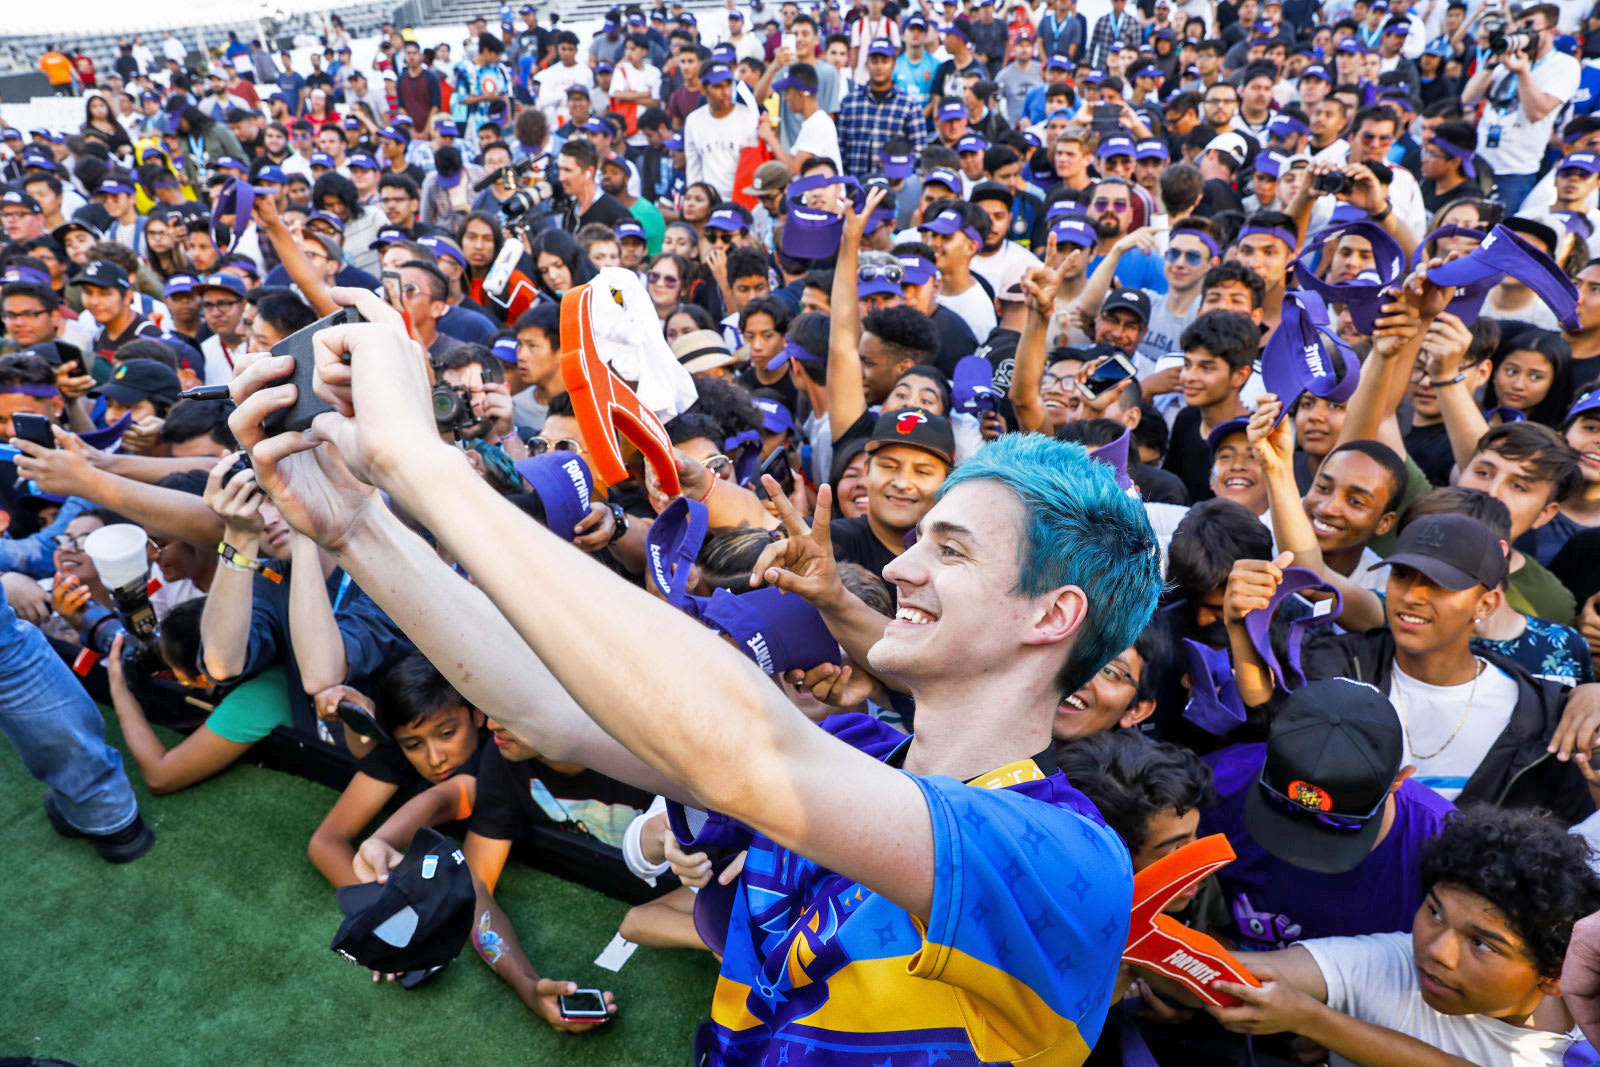 fortnite streamer ninja is the first to 10 million twitch followers - pokemon streamer fortnite